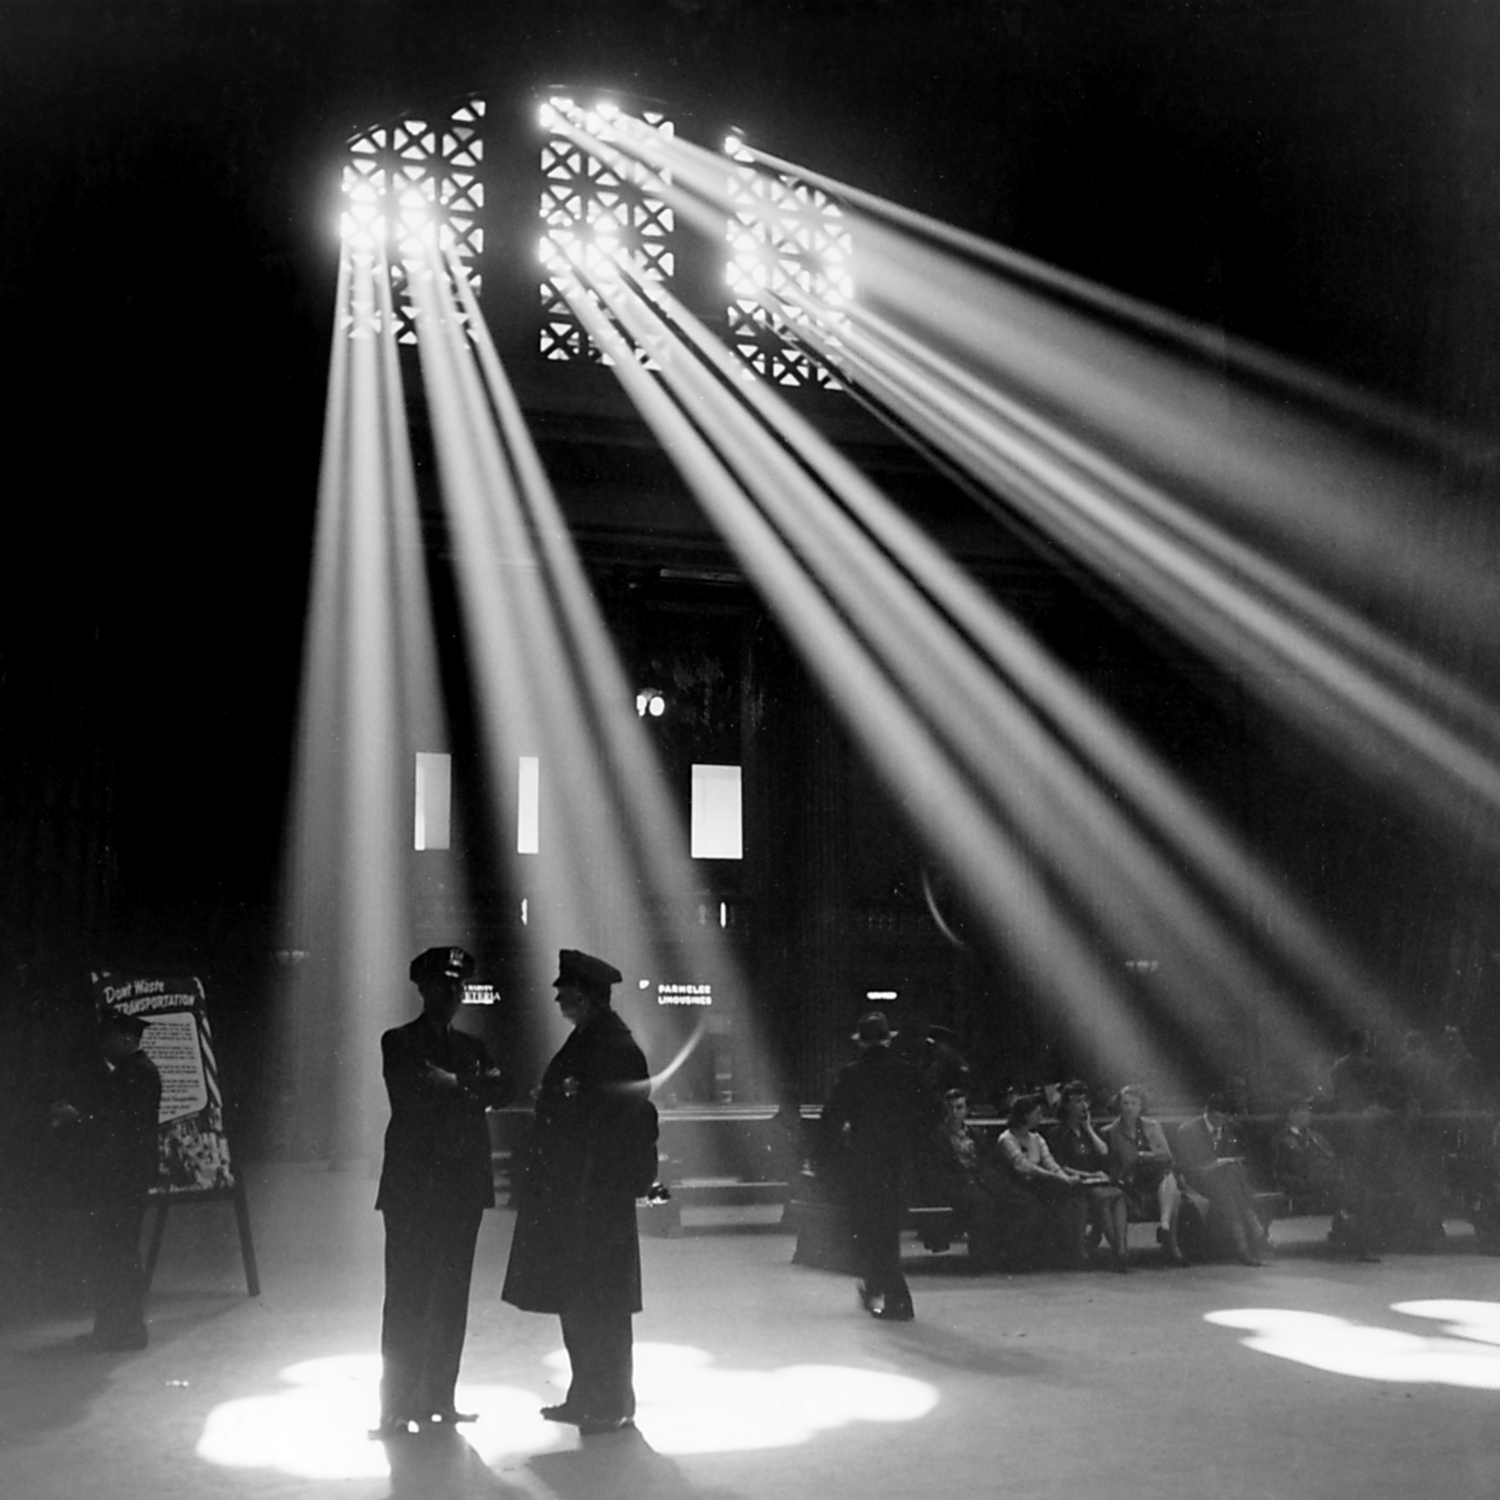 The waiting room of the Union Station in Chicago, Illinois